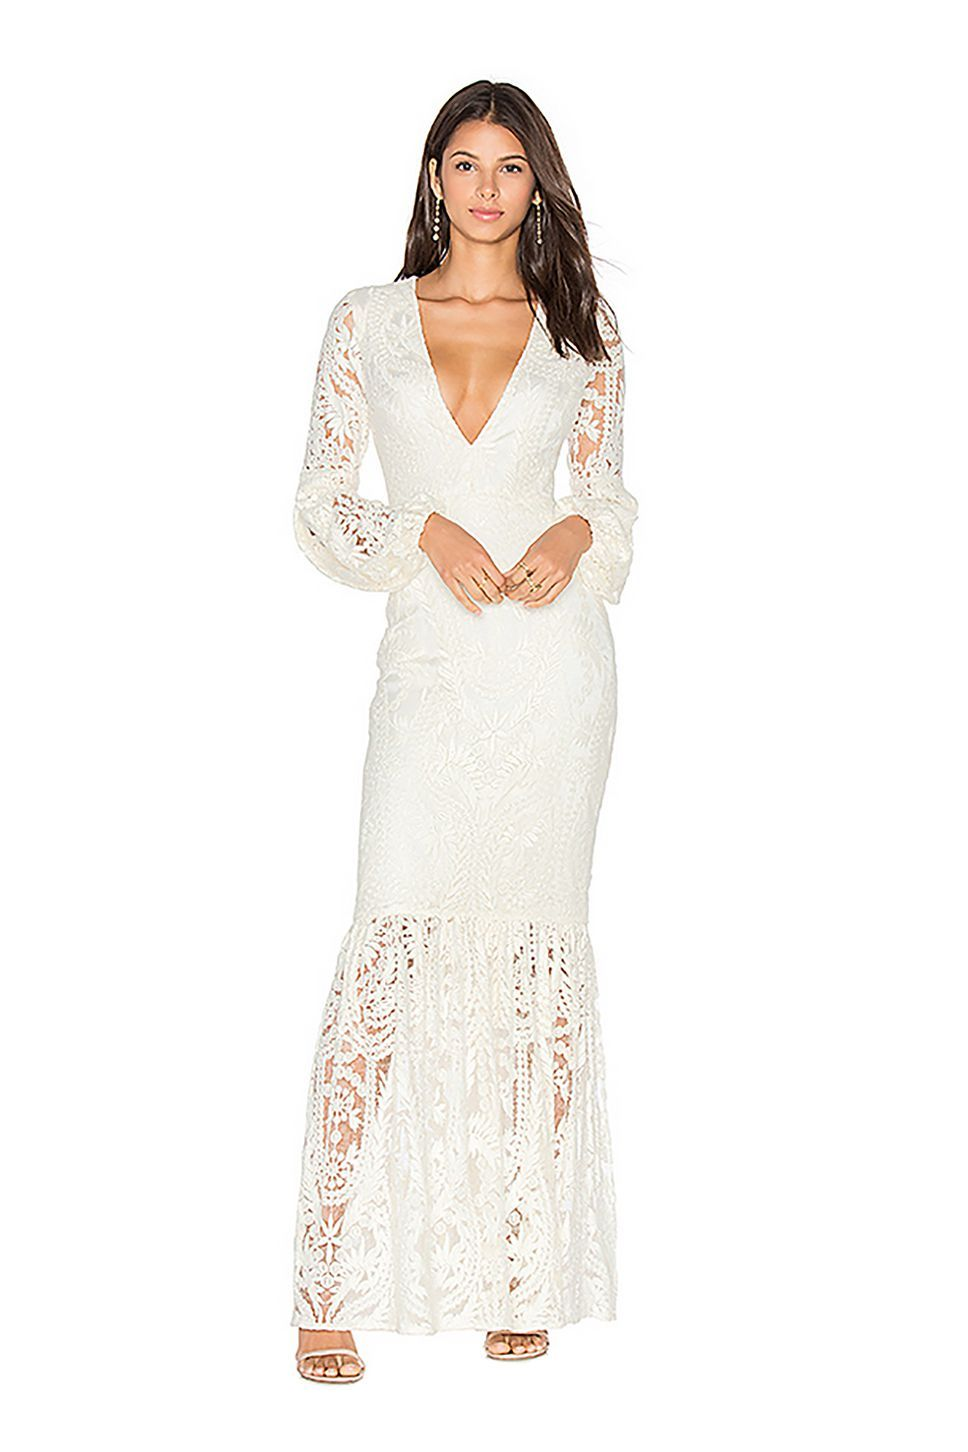 482495f4dbc Best Cool Wedding Dresses - Non-Traditional Wedding Gowns You Can Wear Again